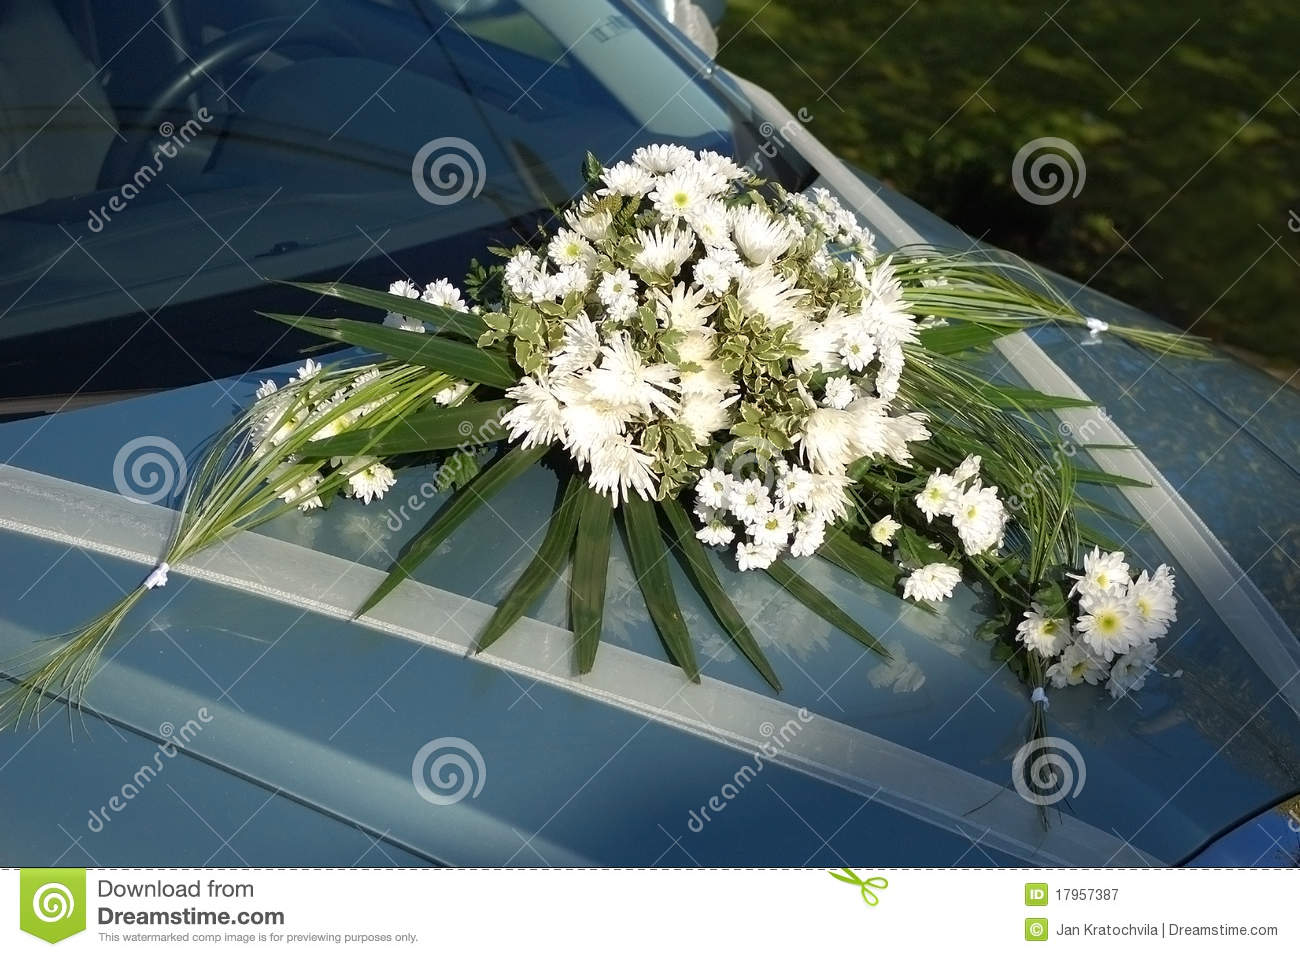 White wedding flower on car